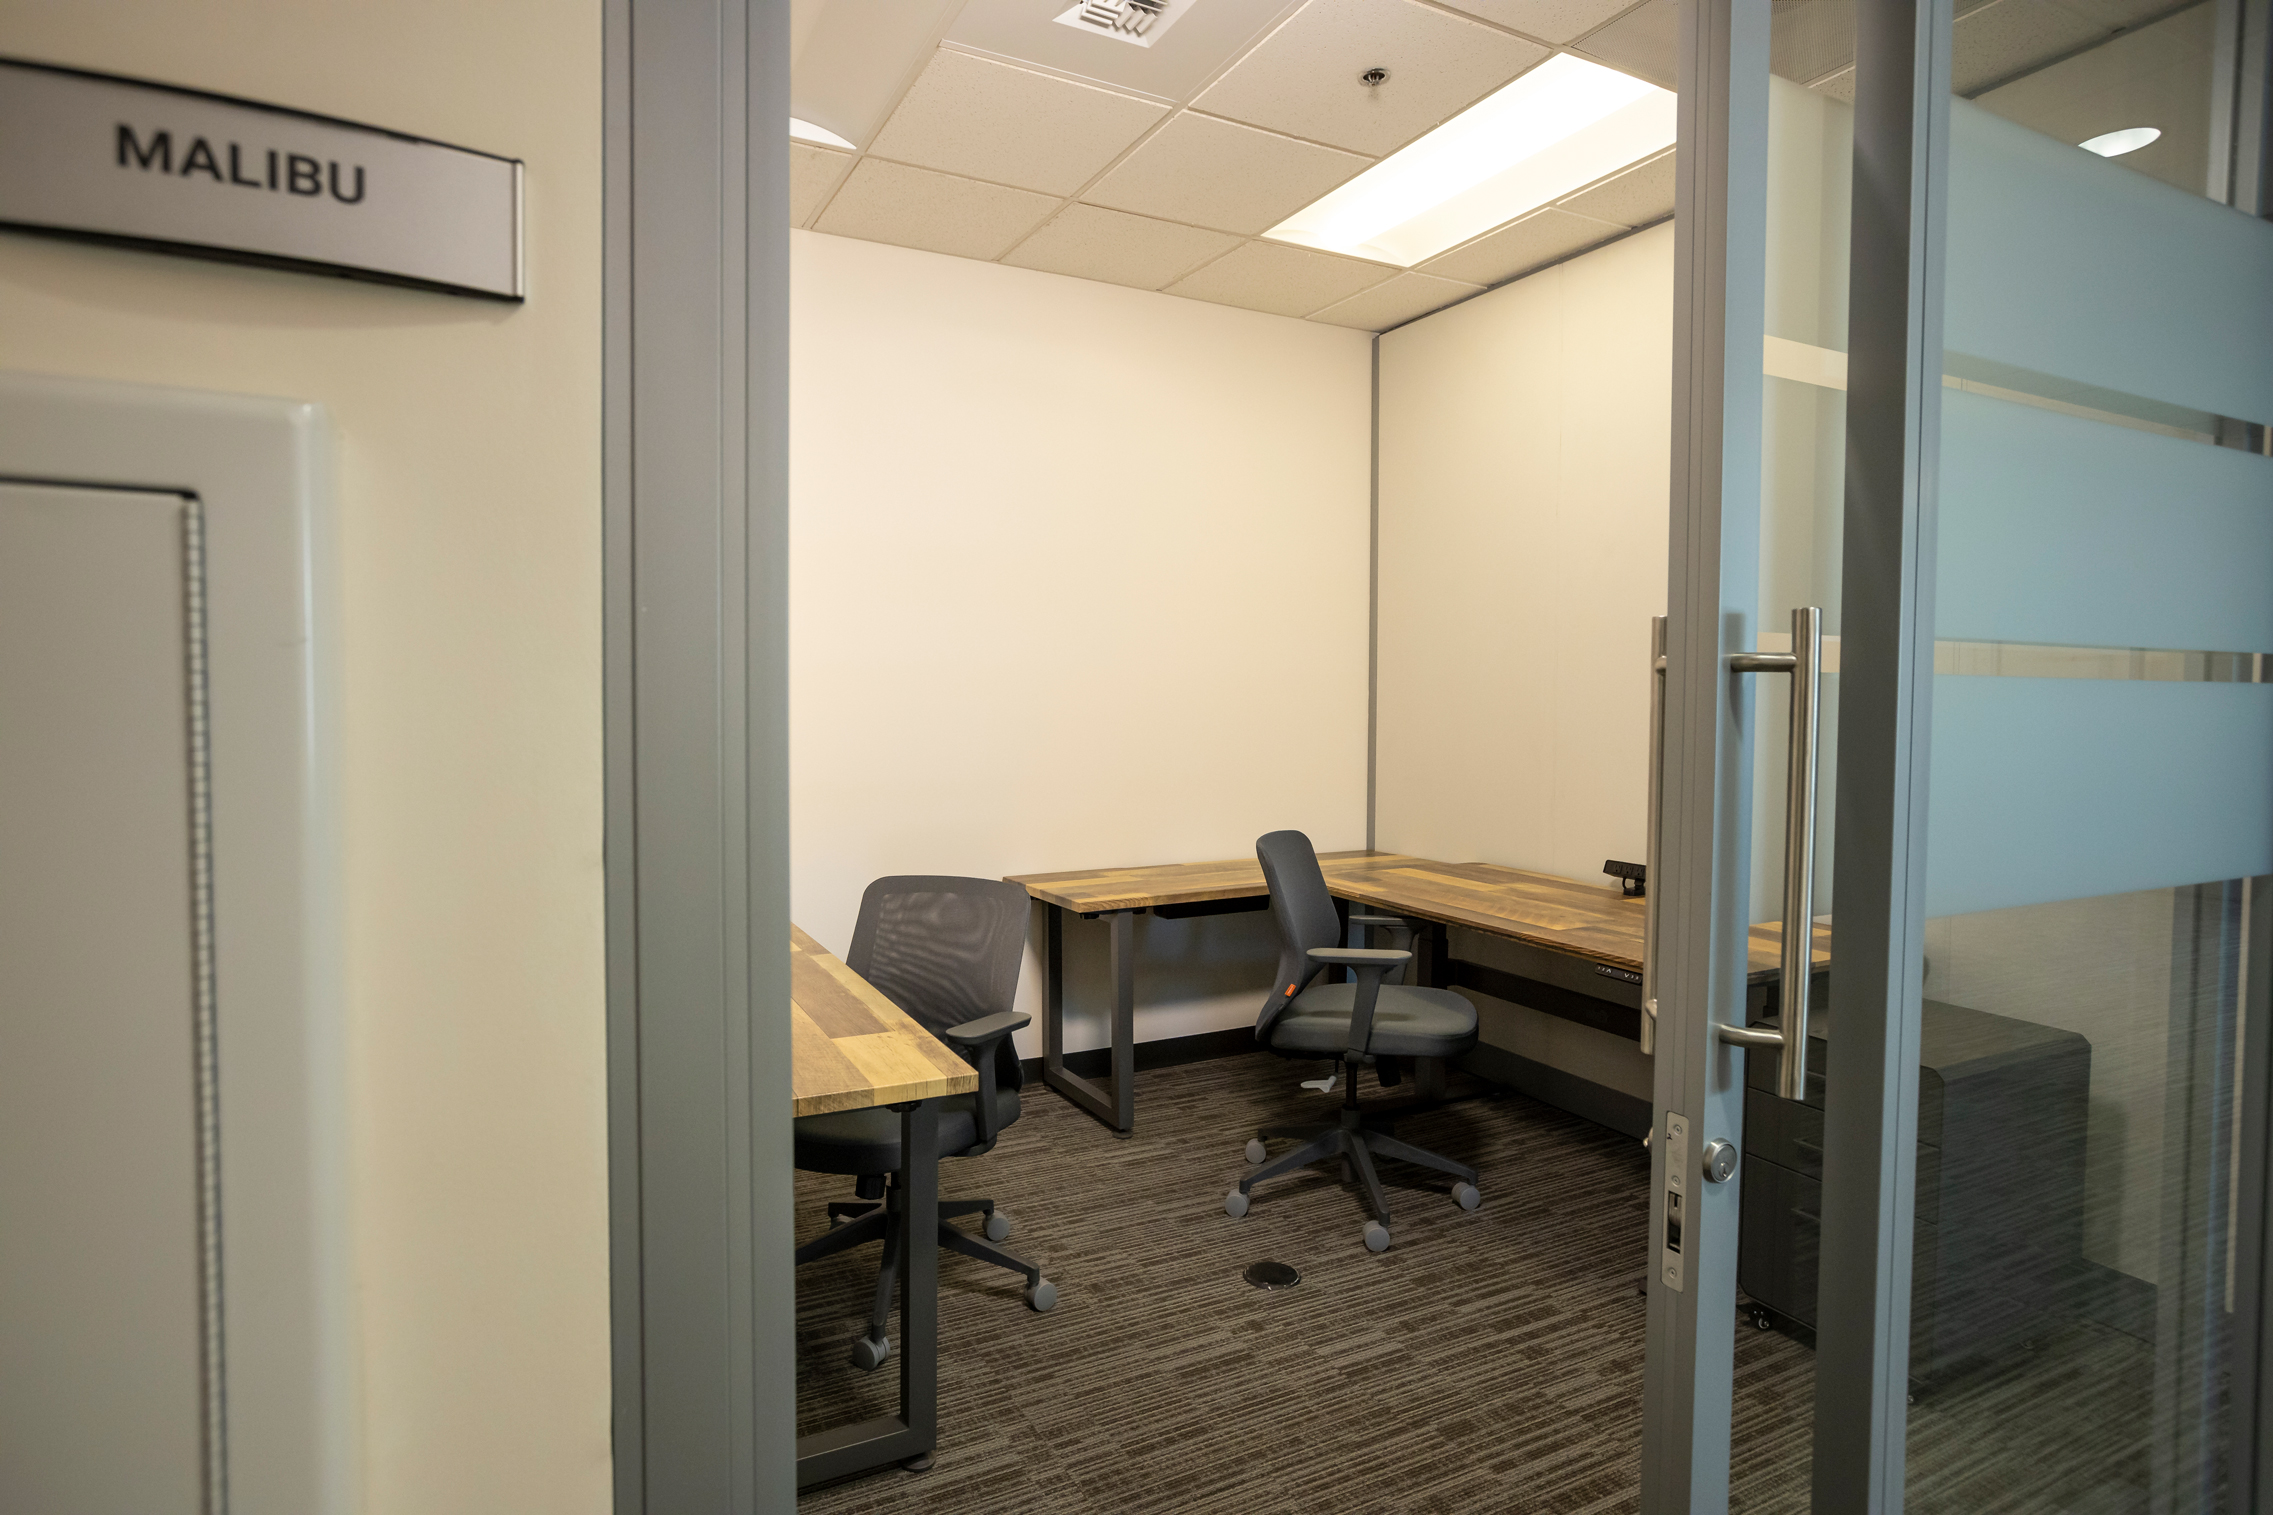 The Malibu private office space at The Studio Coworking Creekside Roseville.